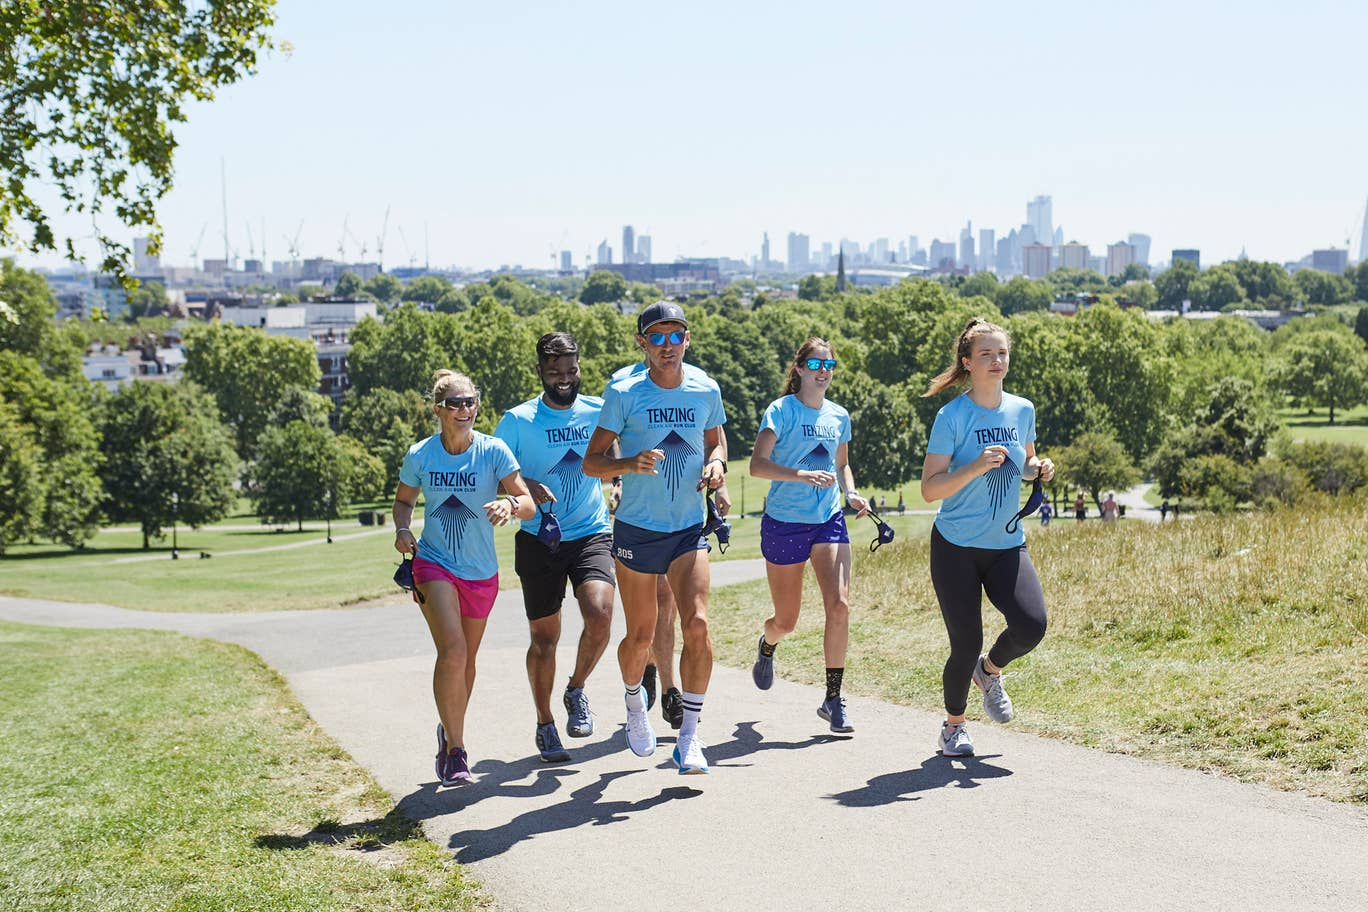 Runners taking part in Run for Clean Air Day, as part of Earth Day 2020